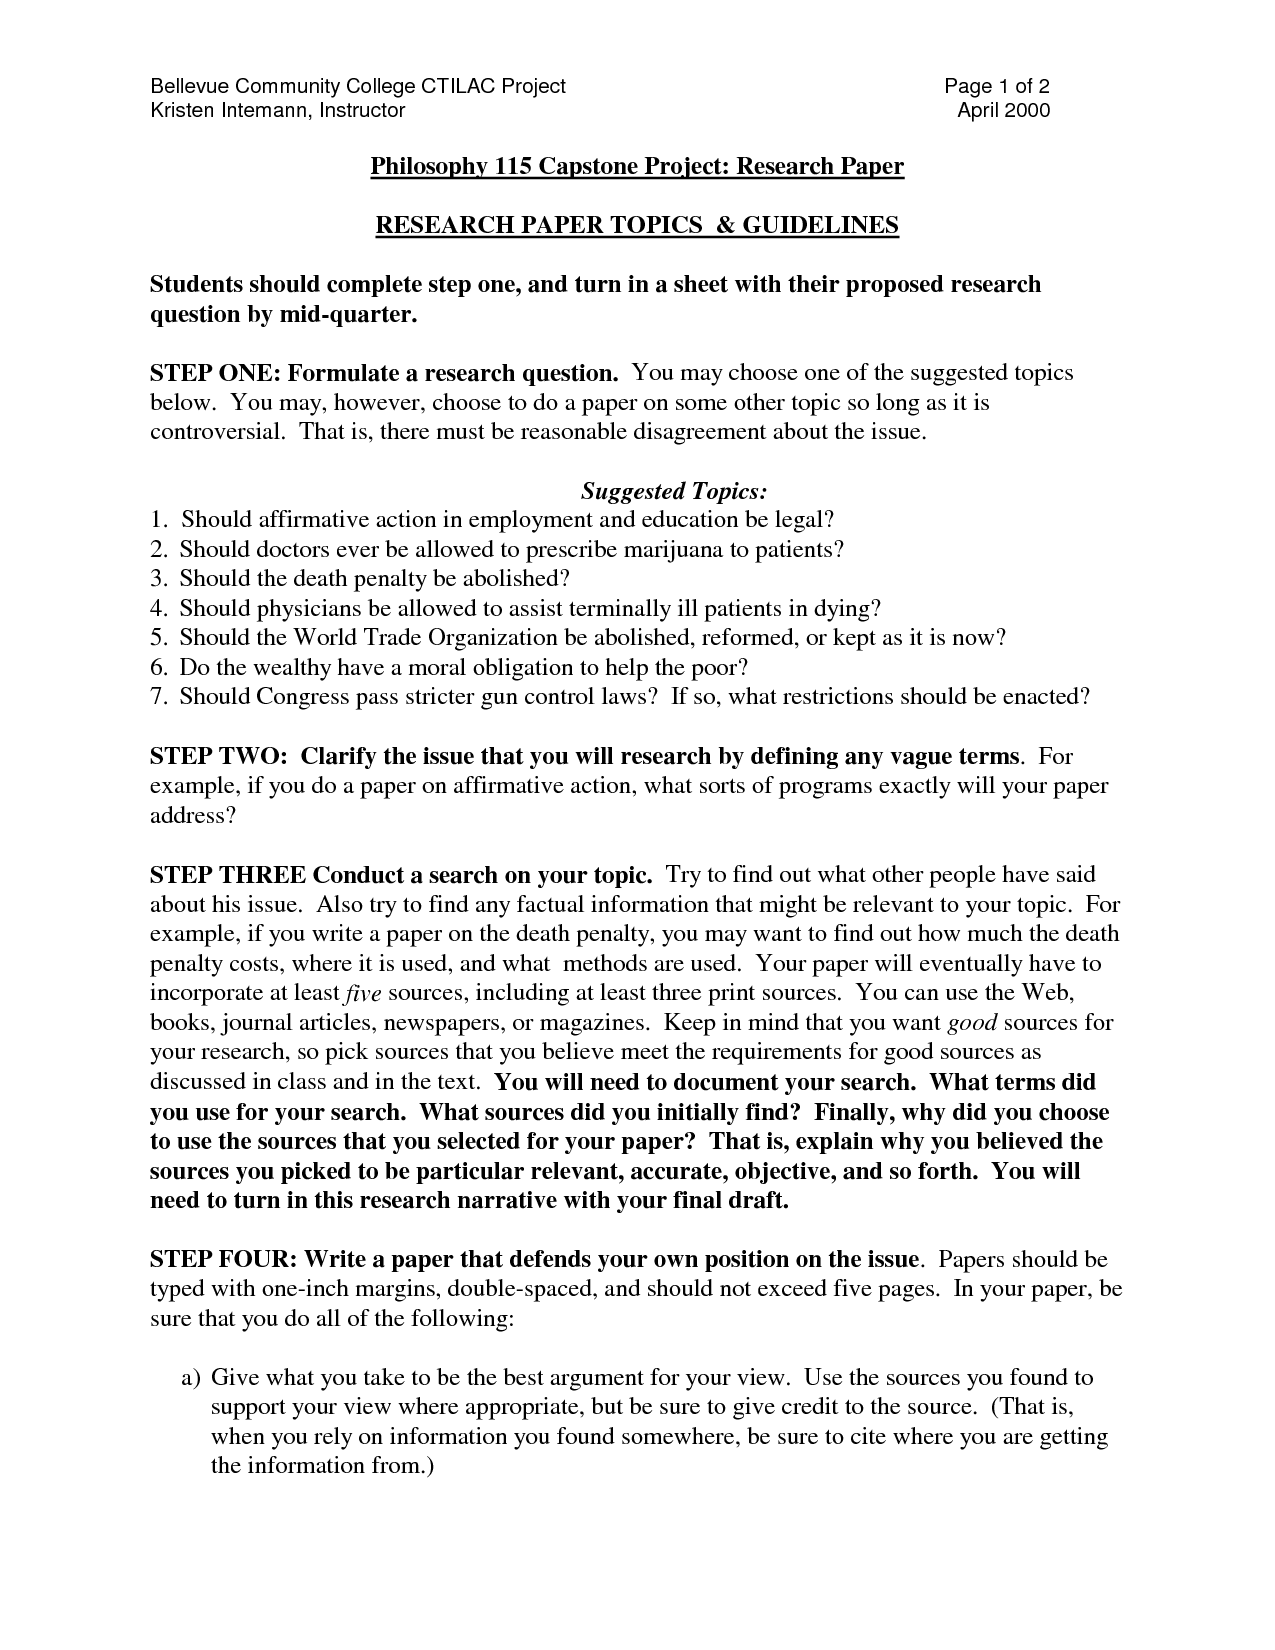 College research essay ideas composition ghostwriters websites